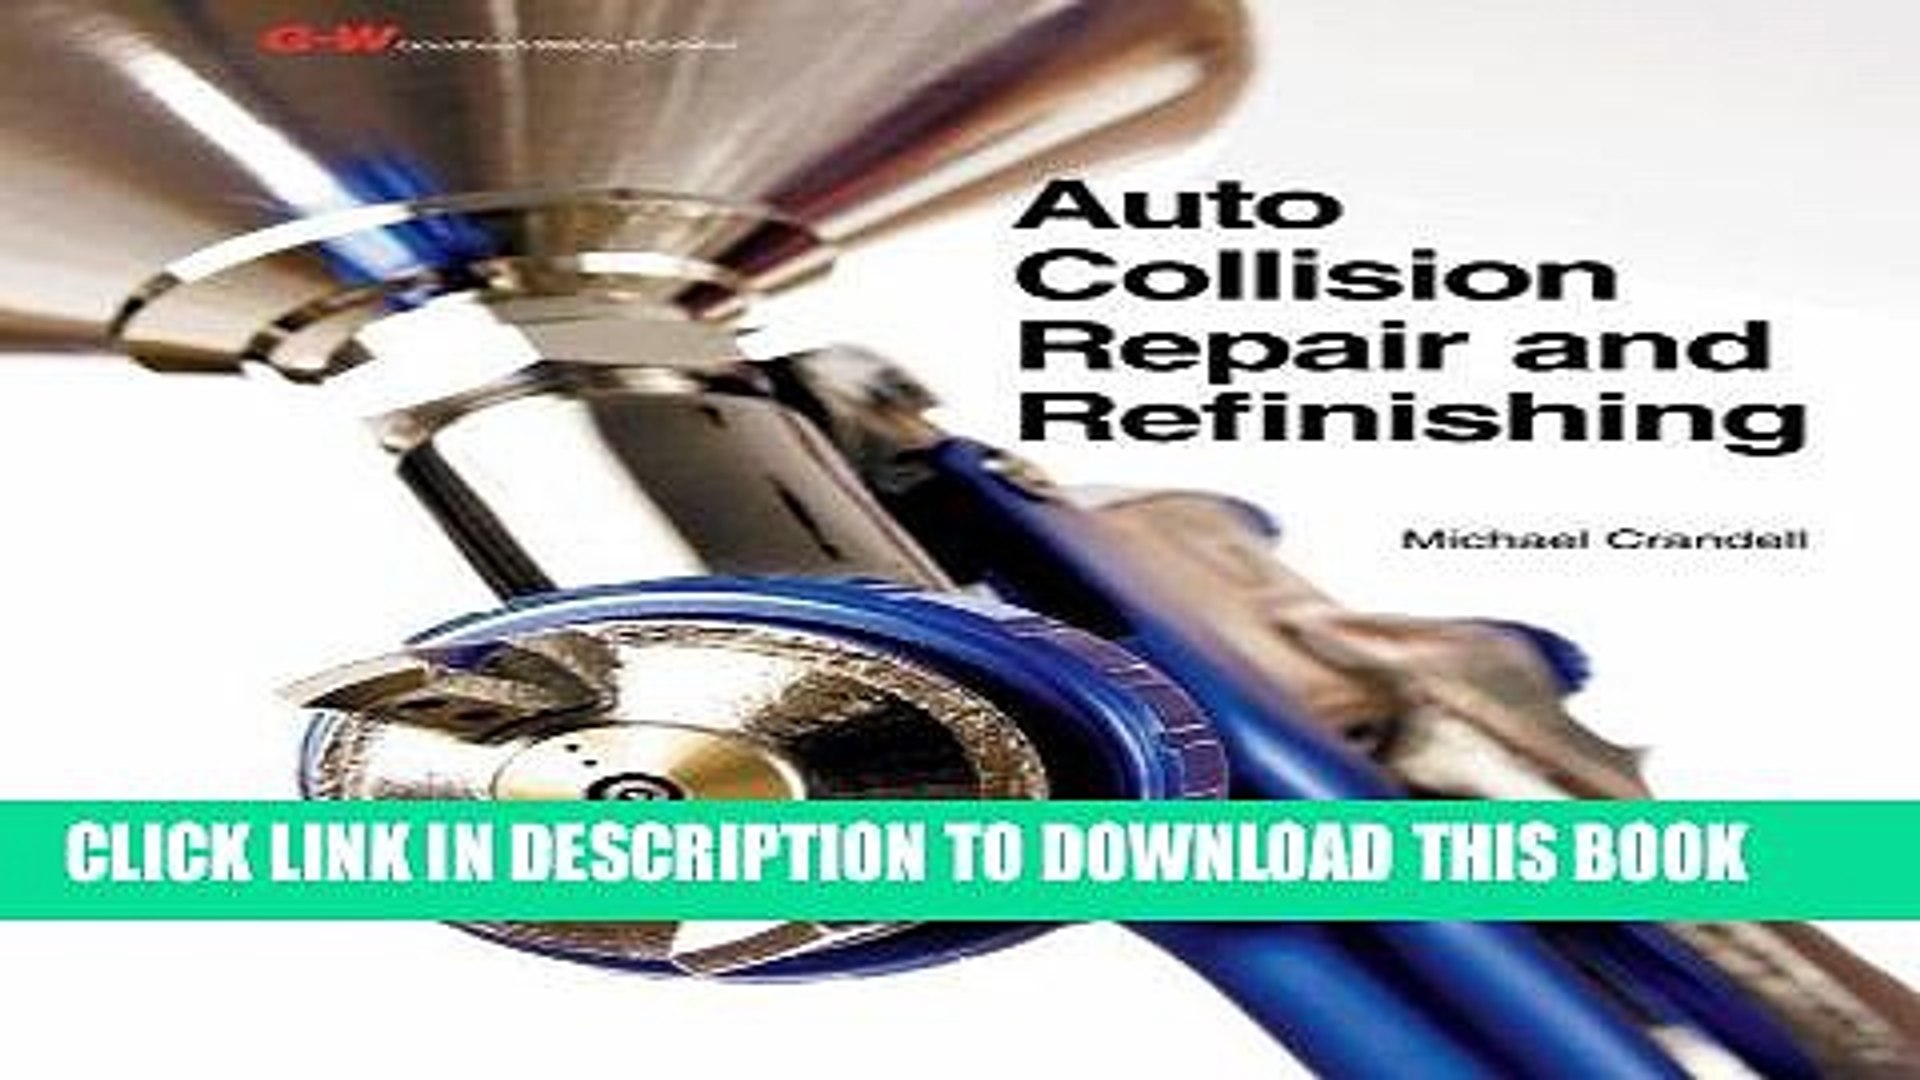 Ebook Auto Collision Repair and Refinishing Free Read